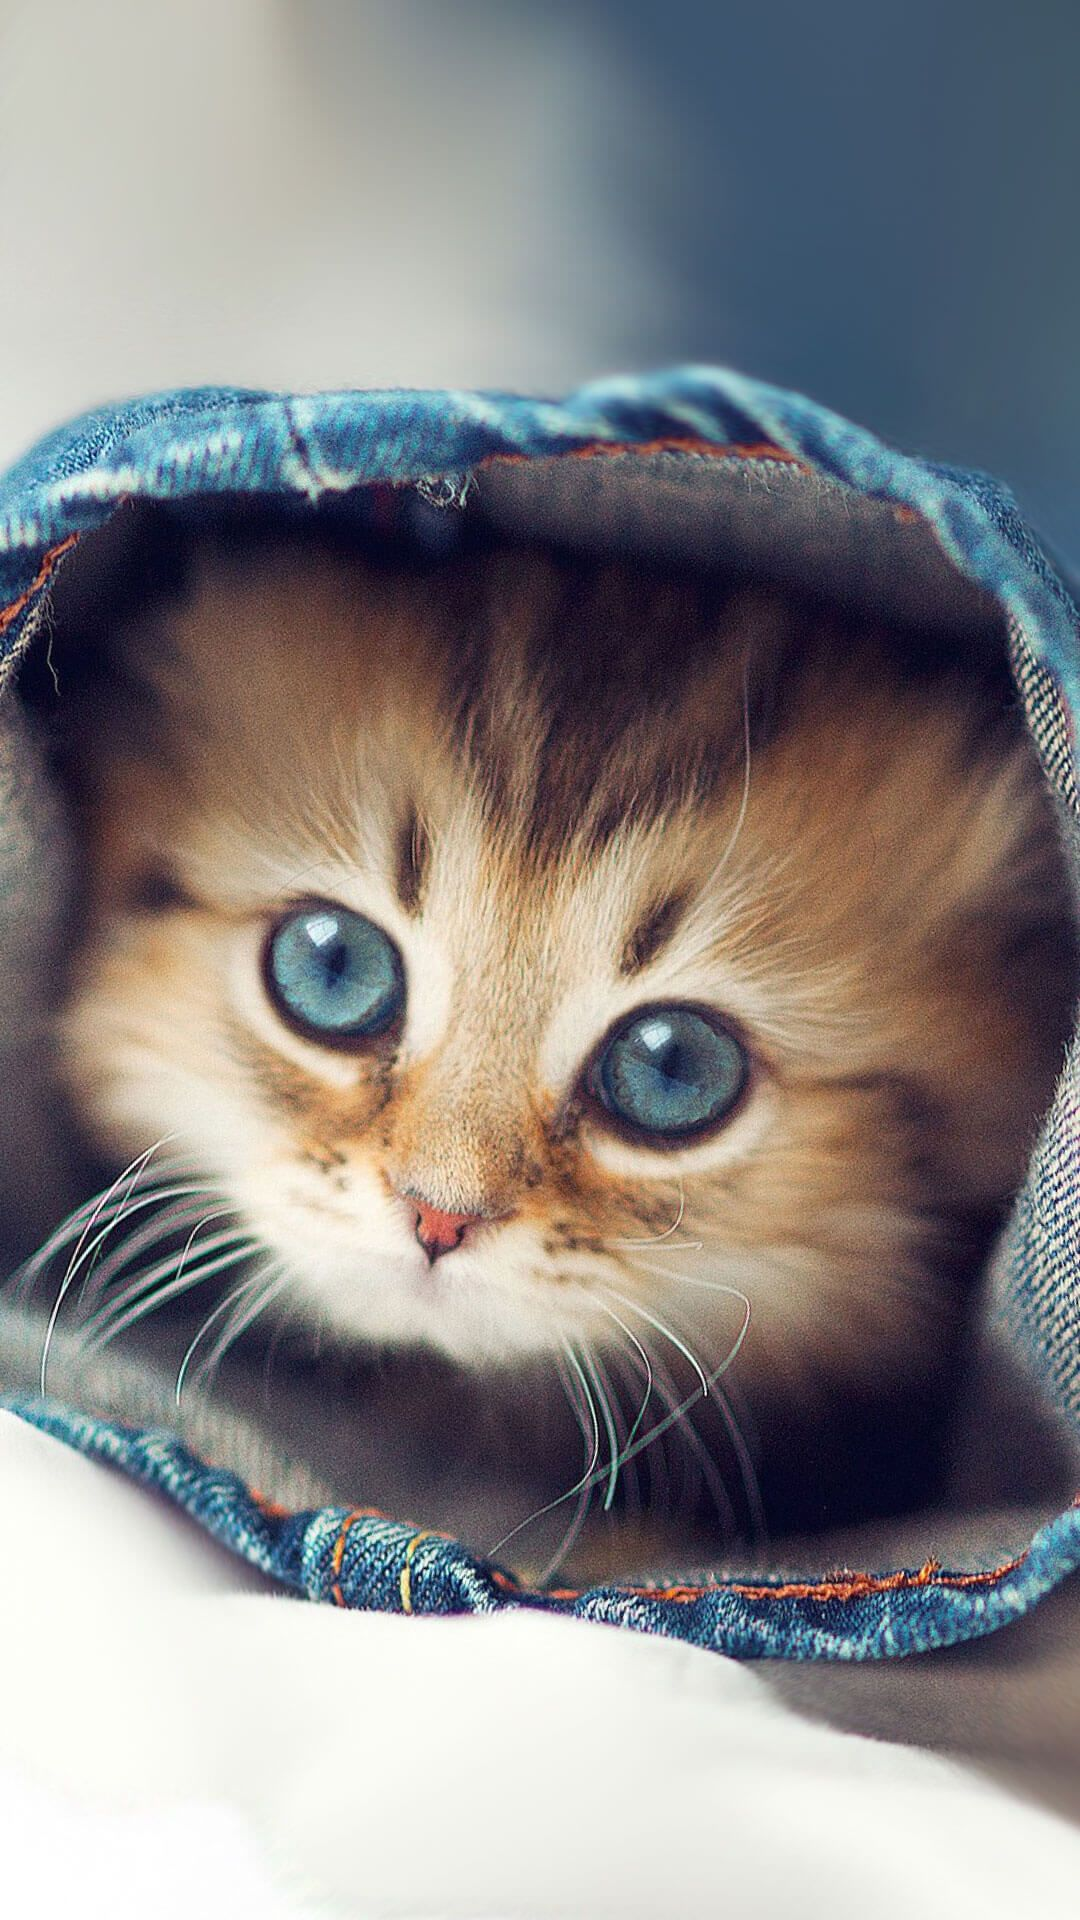 Cute Kittens Wallpapers For iPhone 6 HD Kitten wallpaper